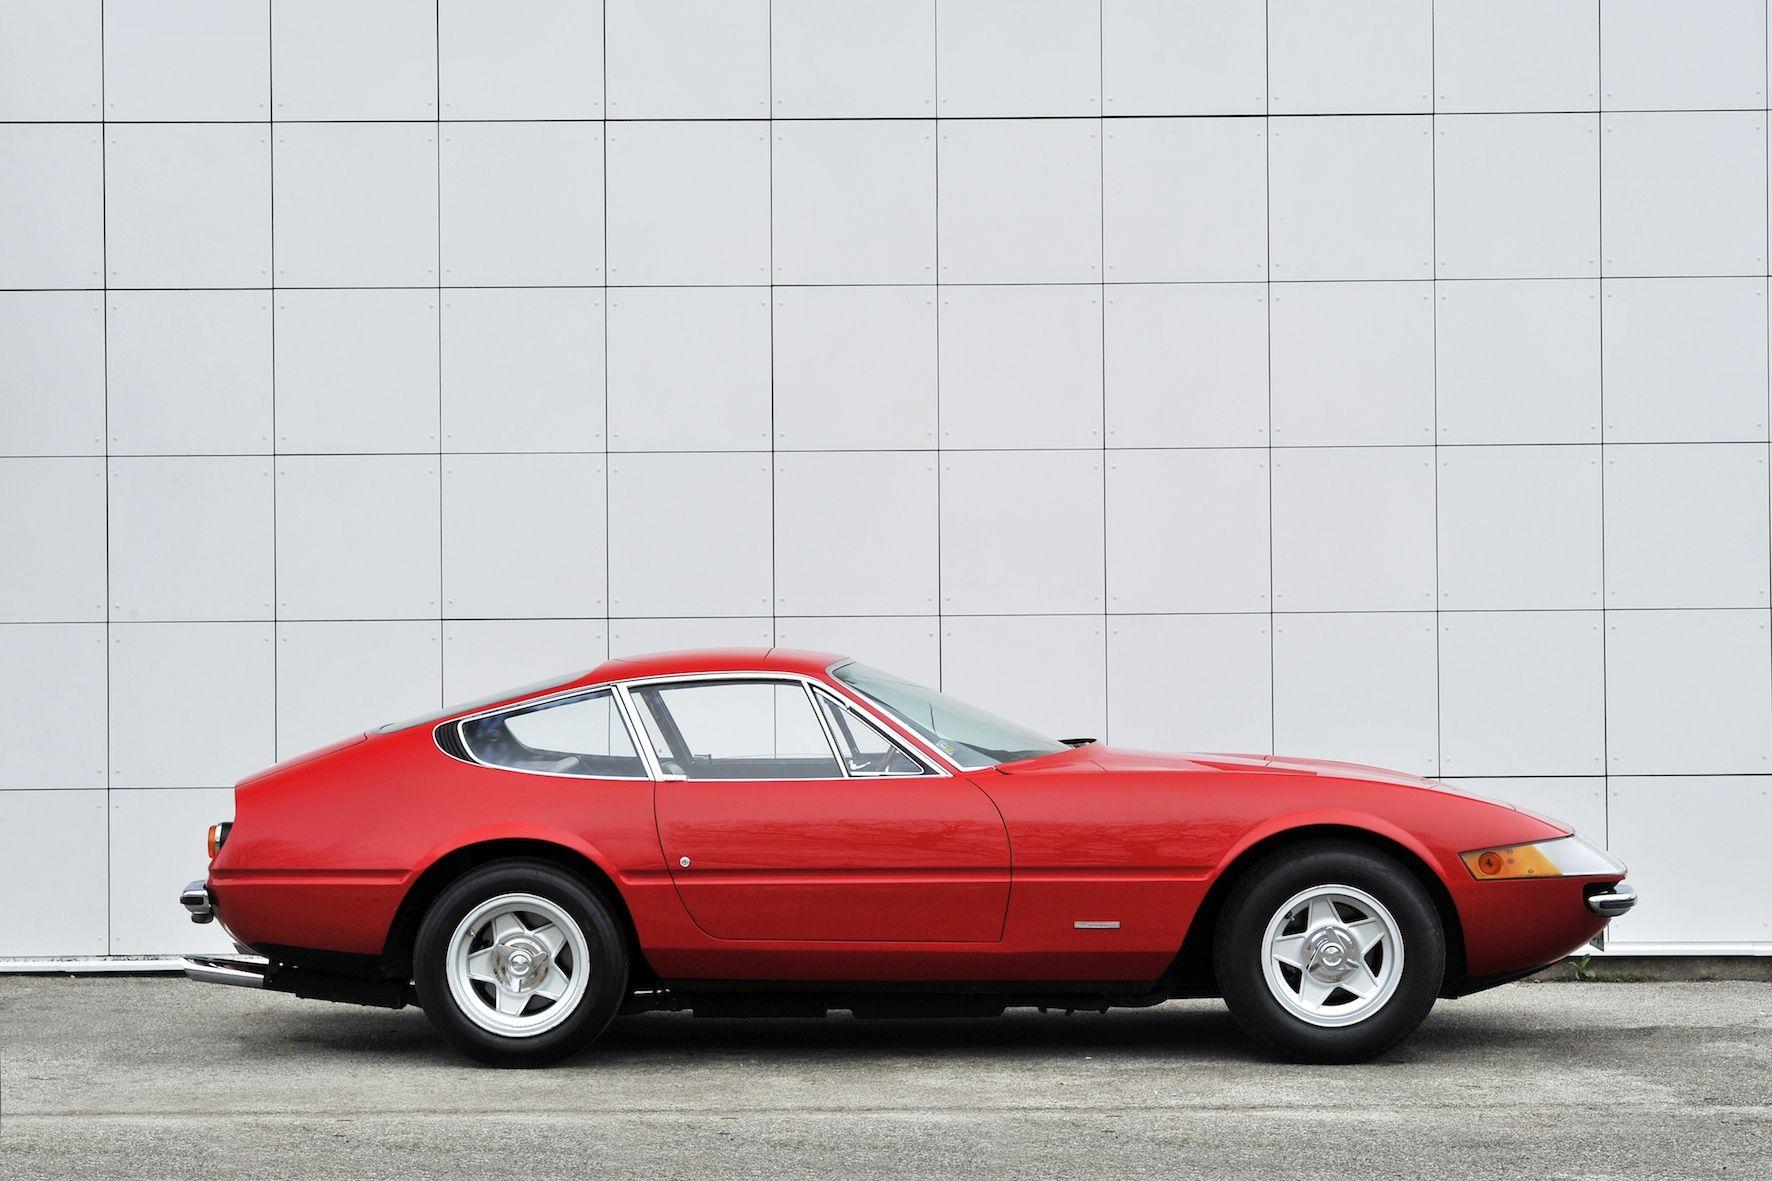 1972 ferrari 365 gtb 4 daytona cars for sale fiskenstap the link to check out great drones and drone accessories sales happening all the time